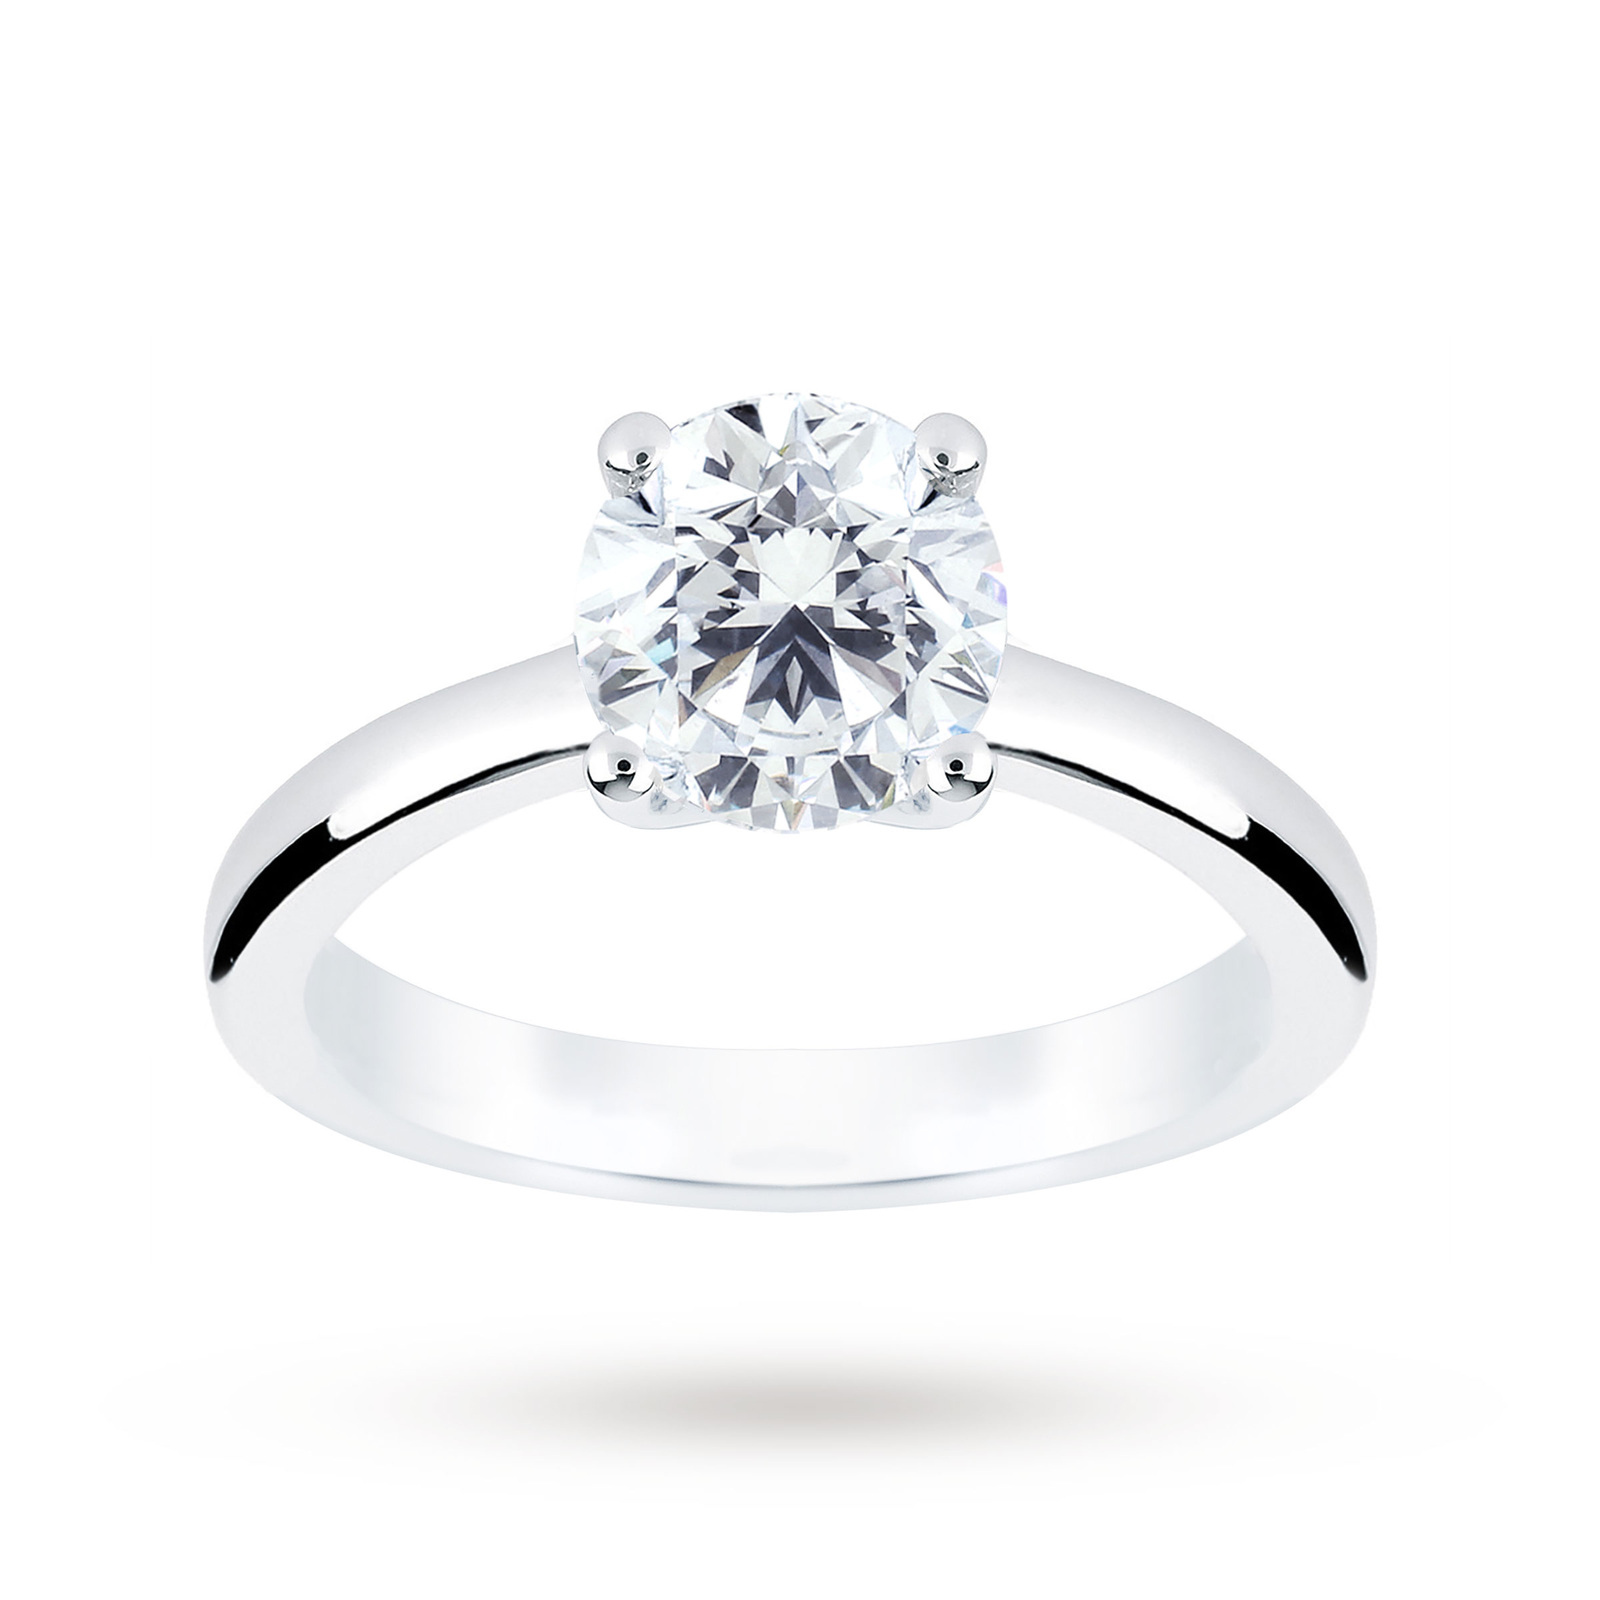 Platinum 1.50 Carat Diamond Solitaire Ring - Ring Size J